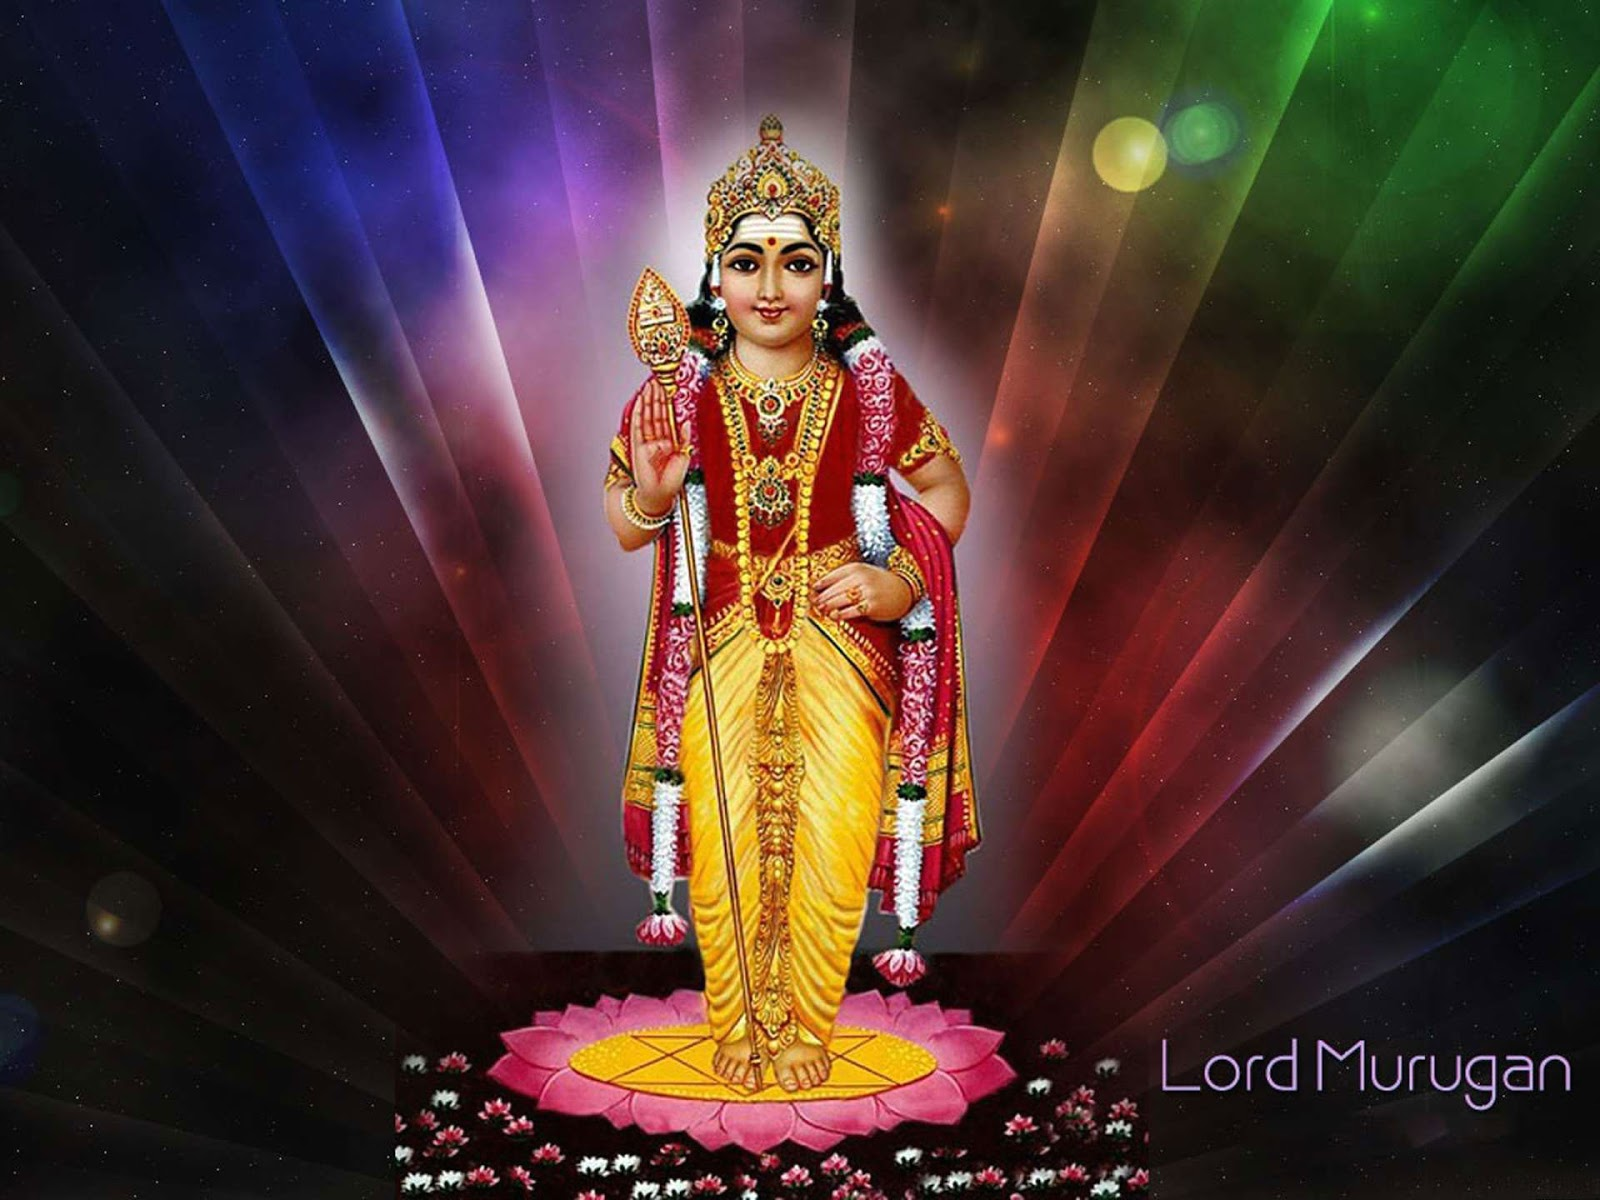 20 Lord Murugan Adbhut HD Pictures And Wallpapers